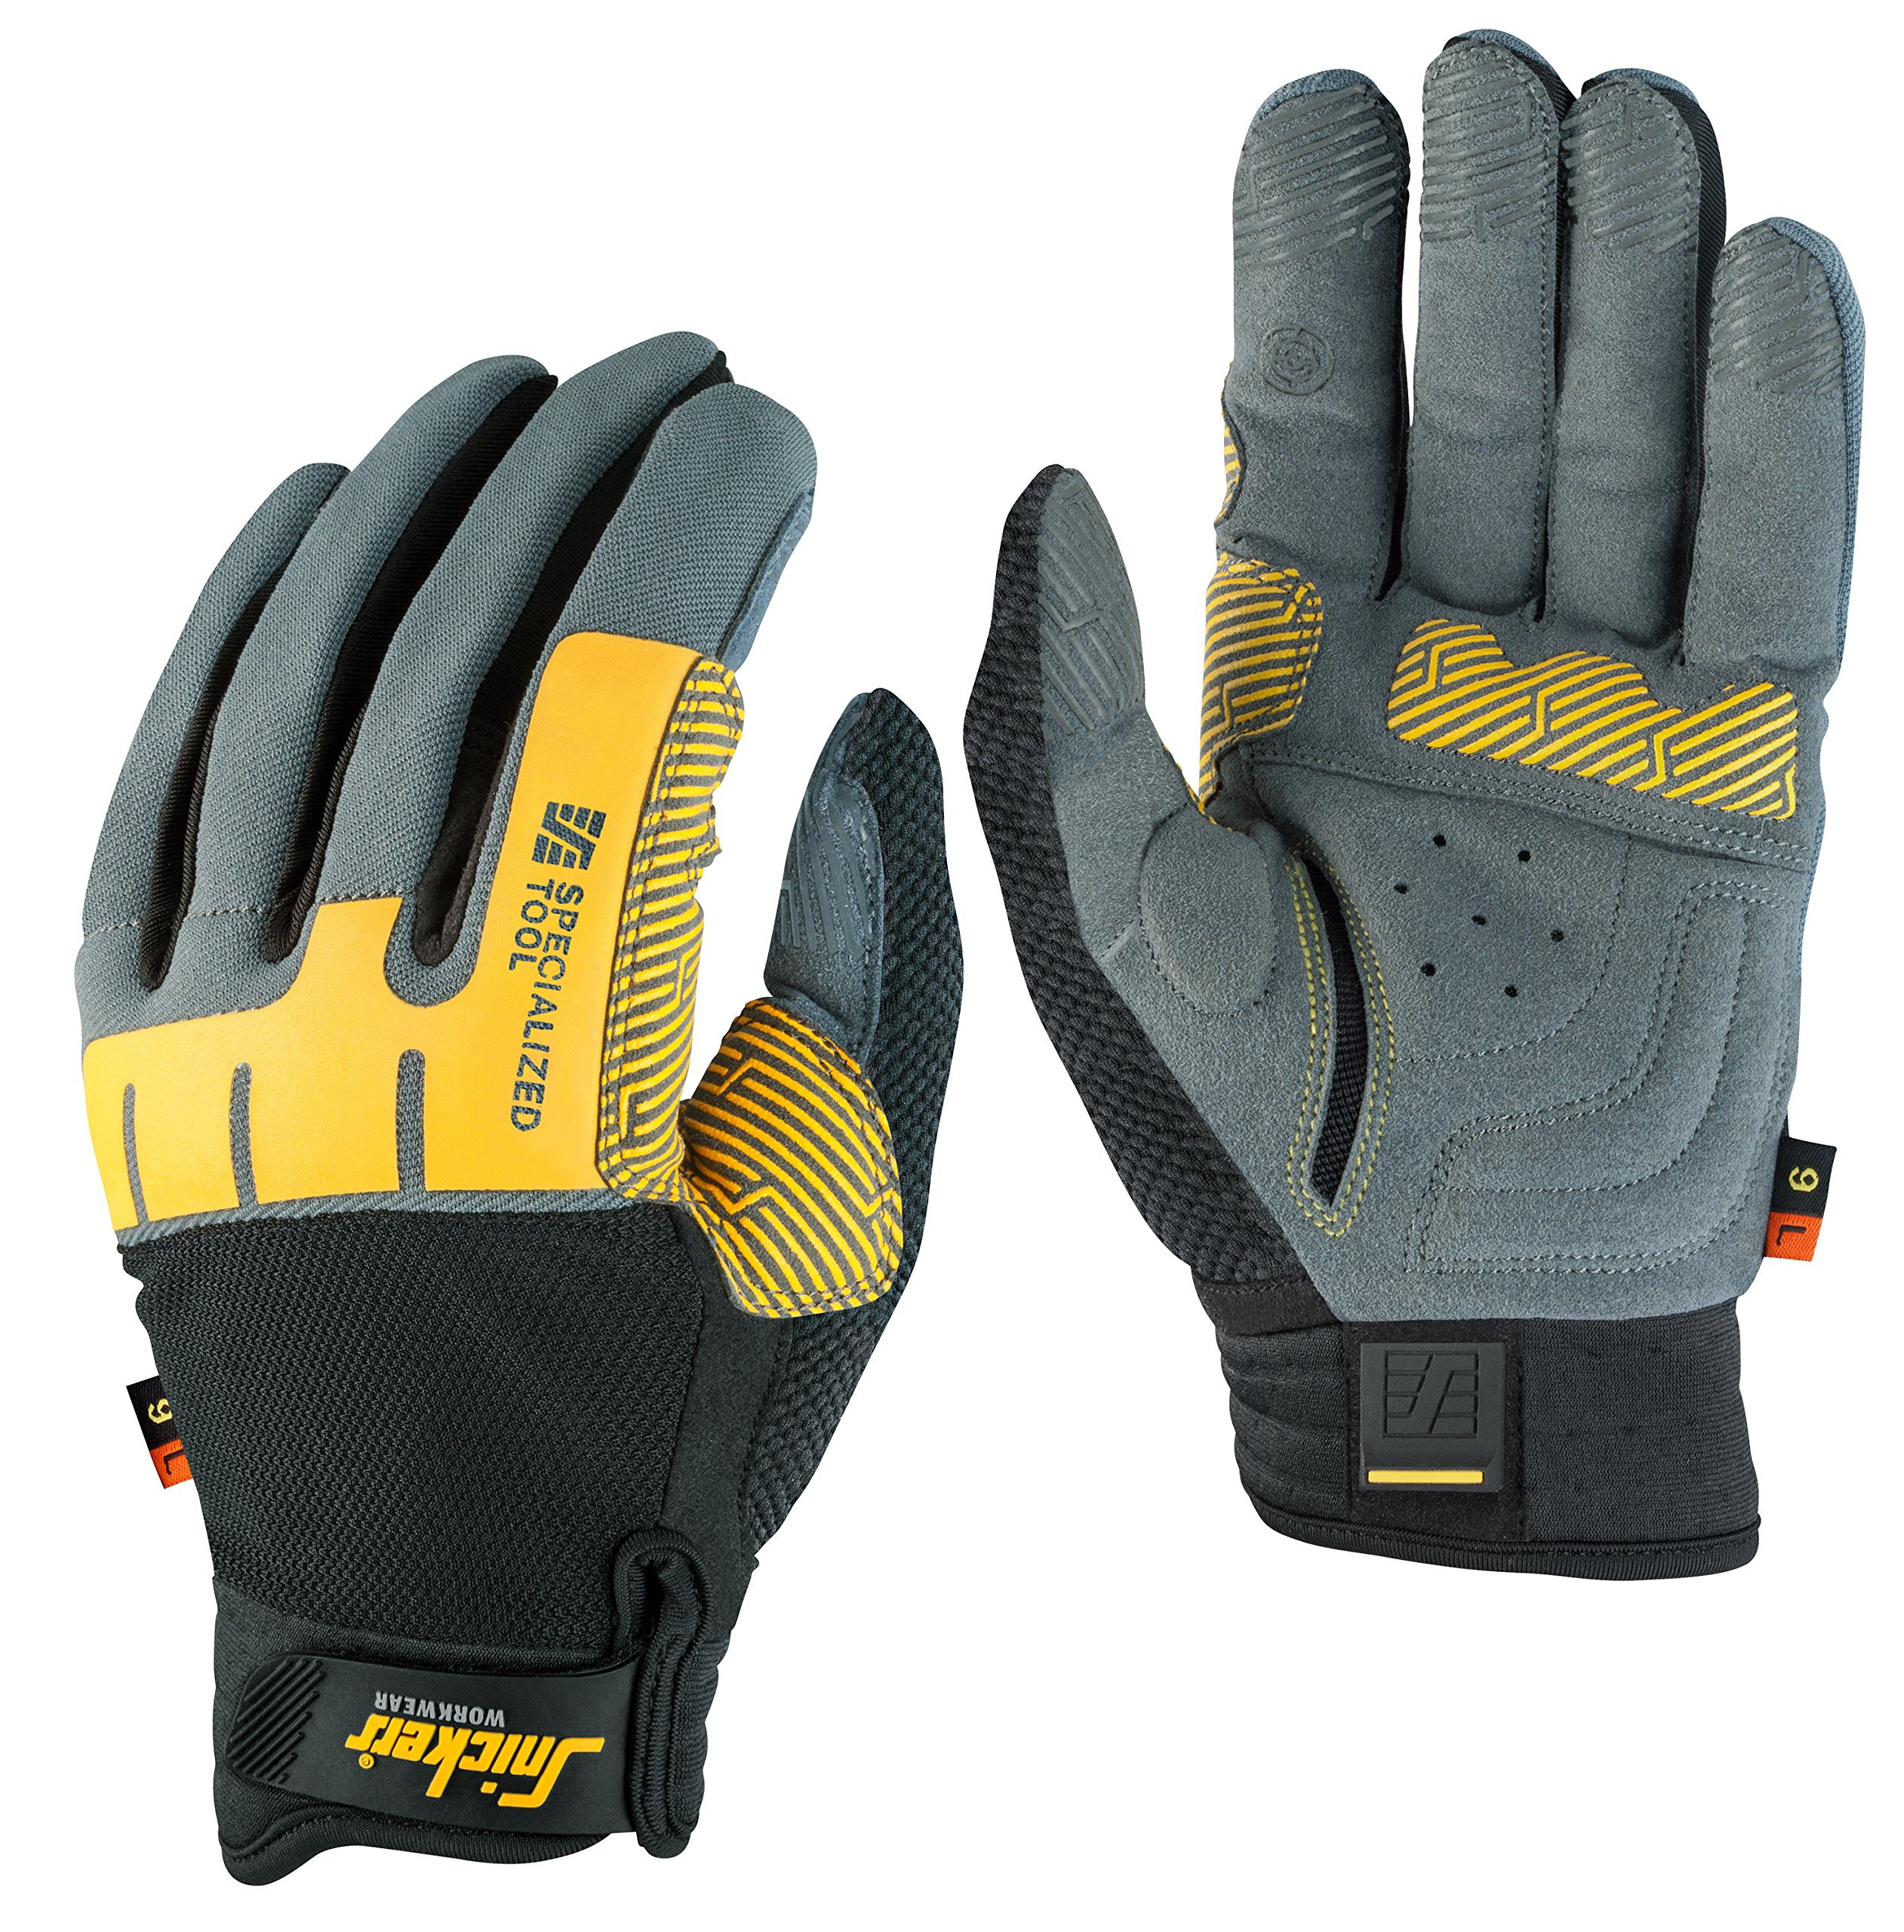 Snickers 95974804009''Specialized Tool'' Left Glove, Grey/Black, 9